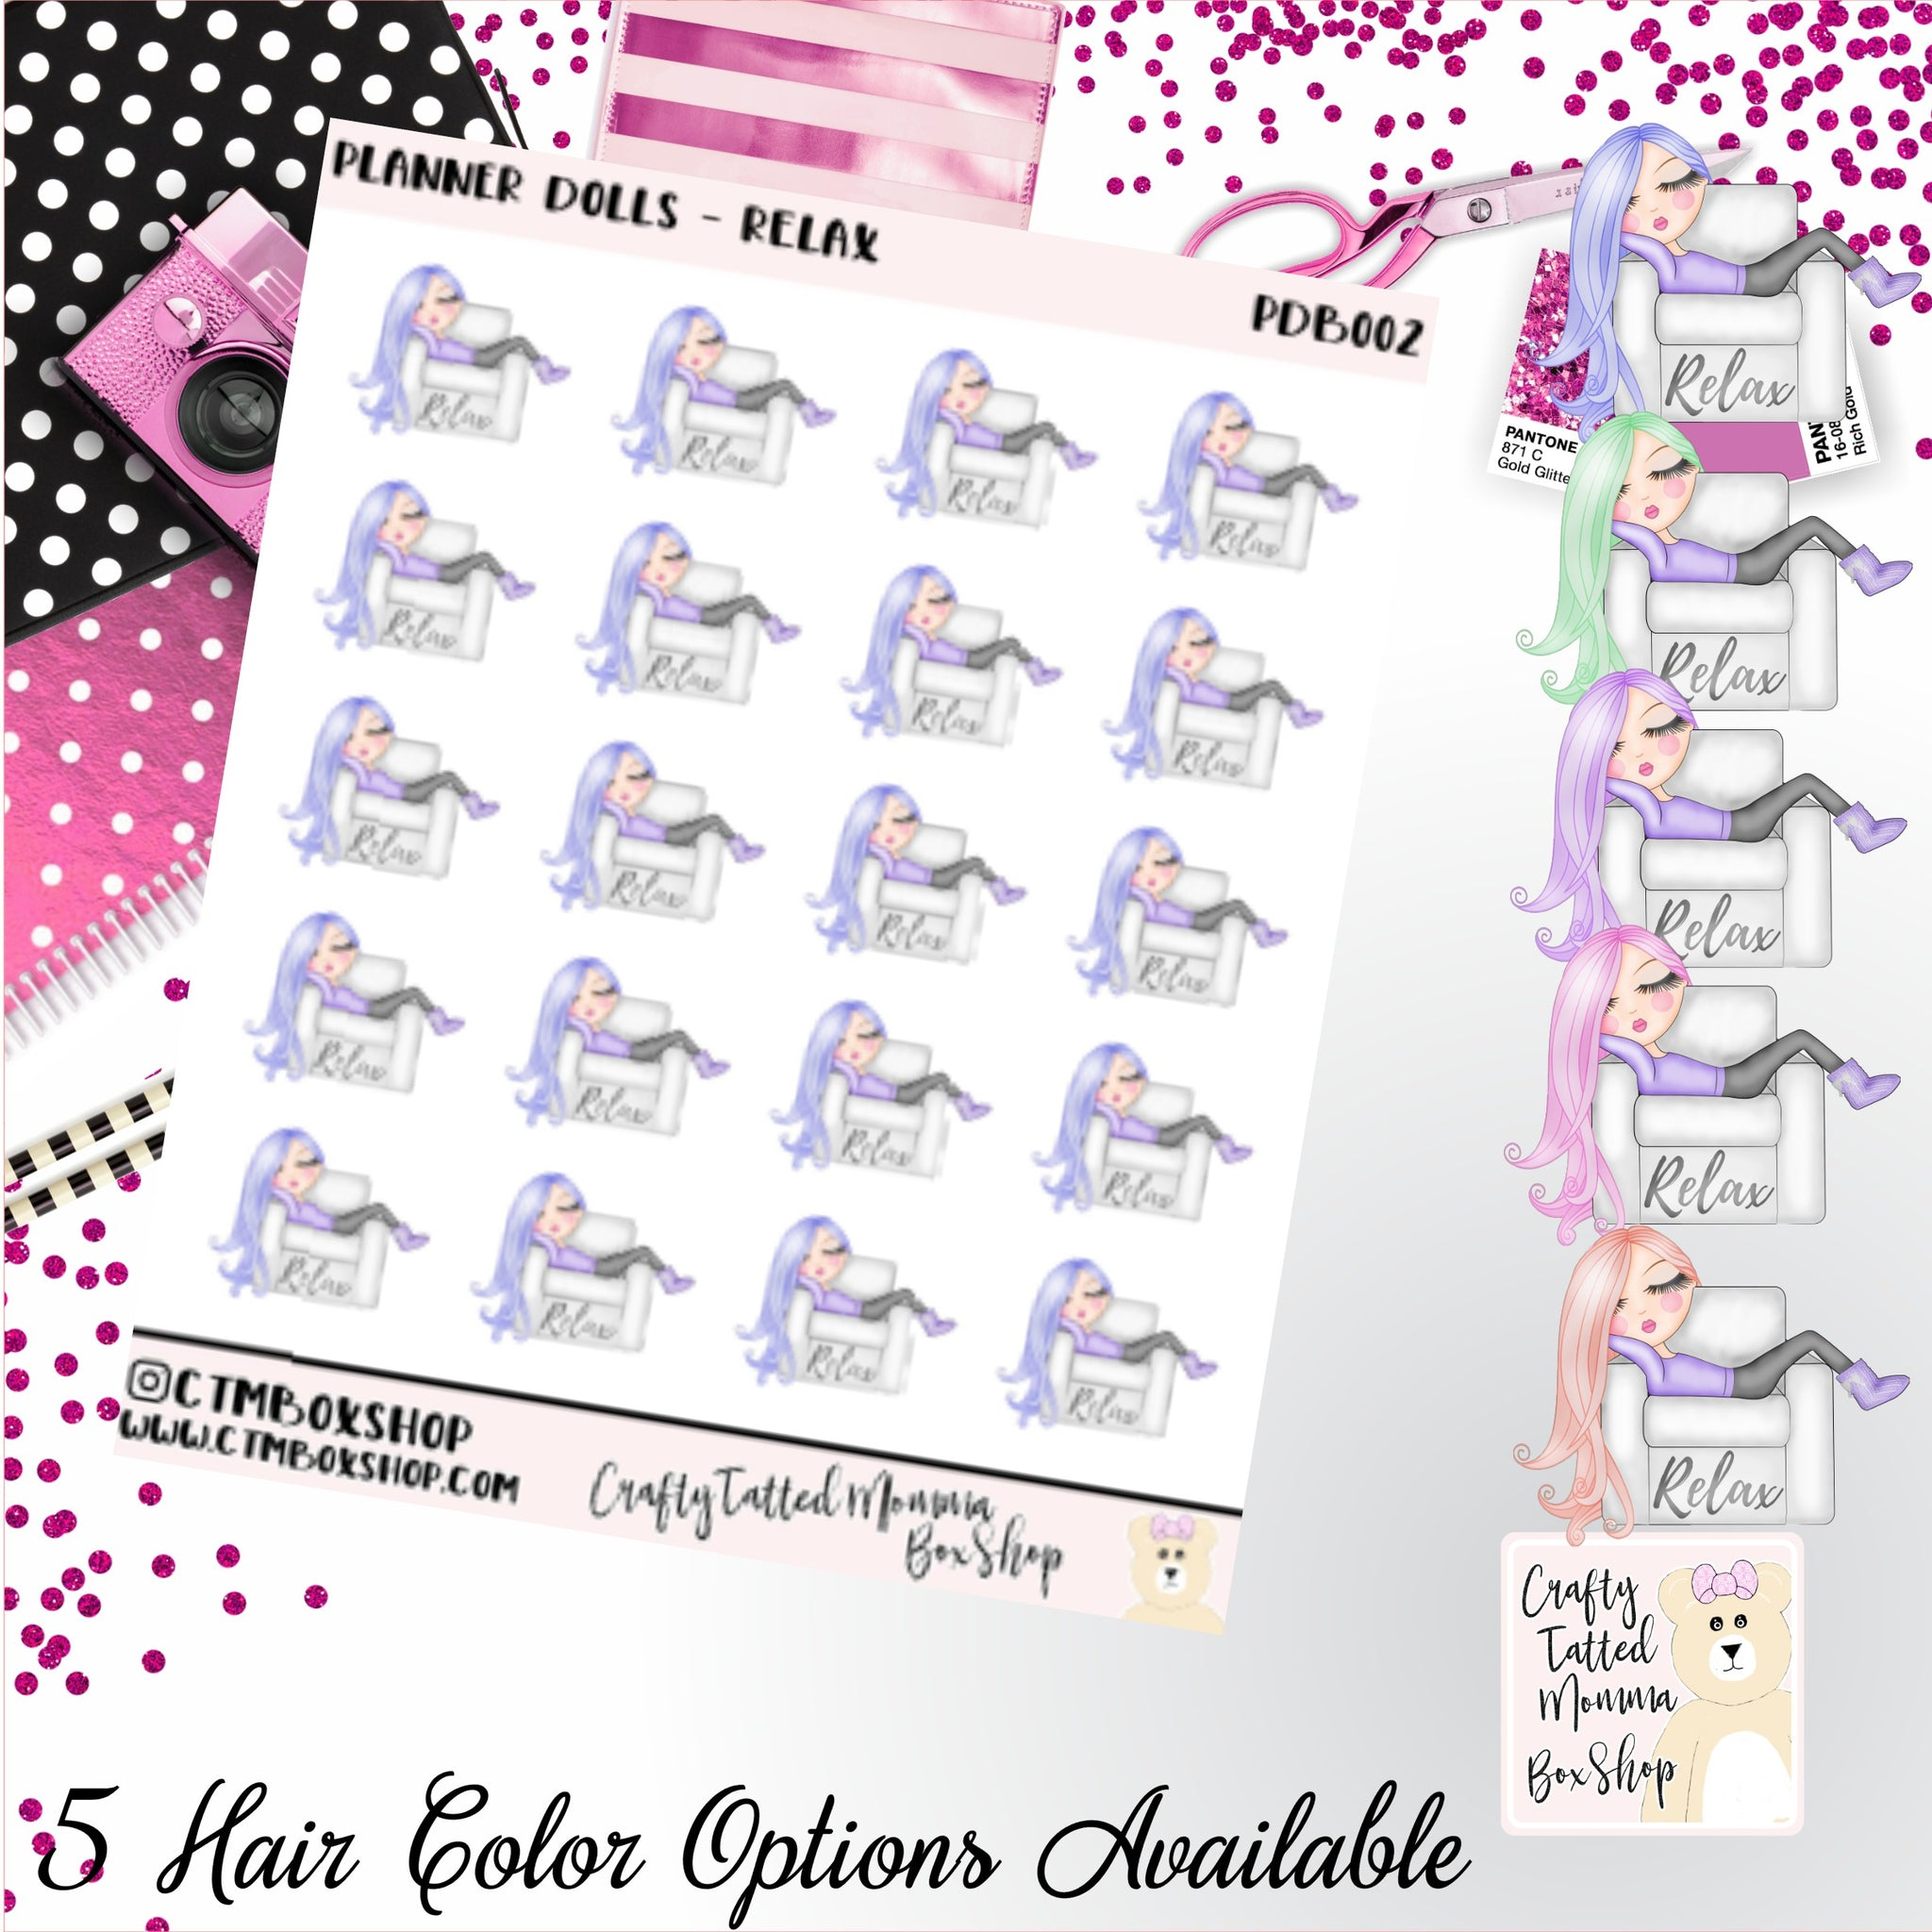 Relax Dolls Stickers   Character Stickers   Planner Stickers   Functional Stickers   Deco Stickers